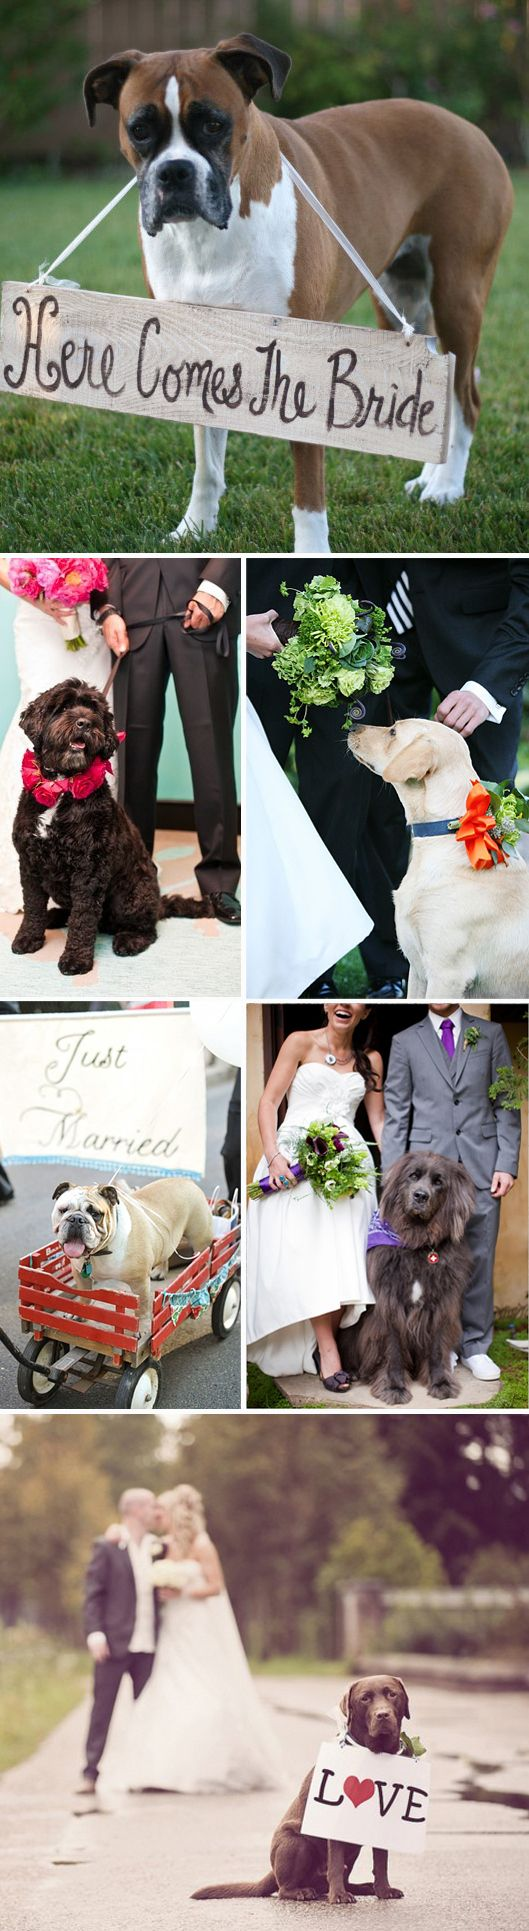 #GiggisBridal #MA #Hudson #Pets #Dogs #Cats #PetsAtWeddings #Adorable